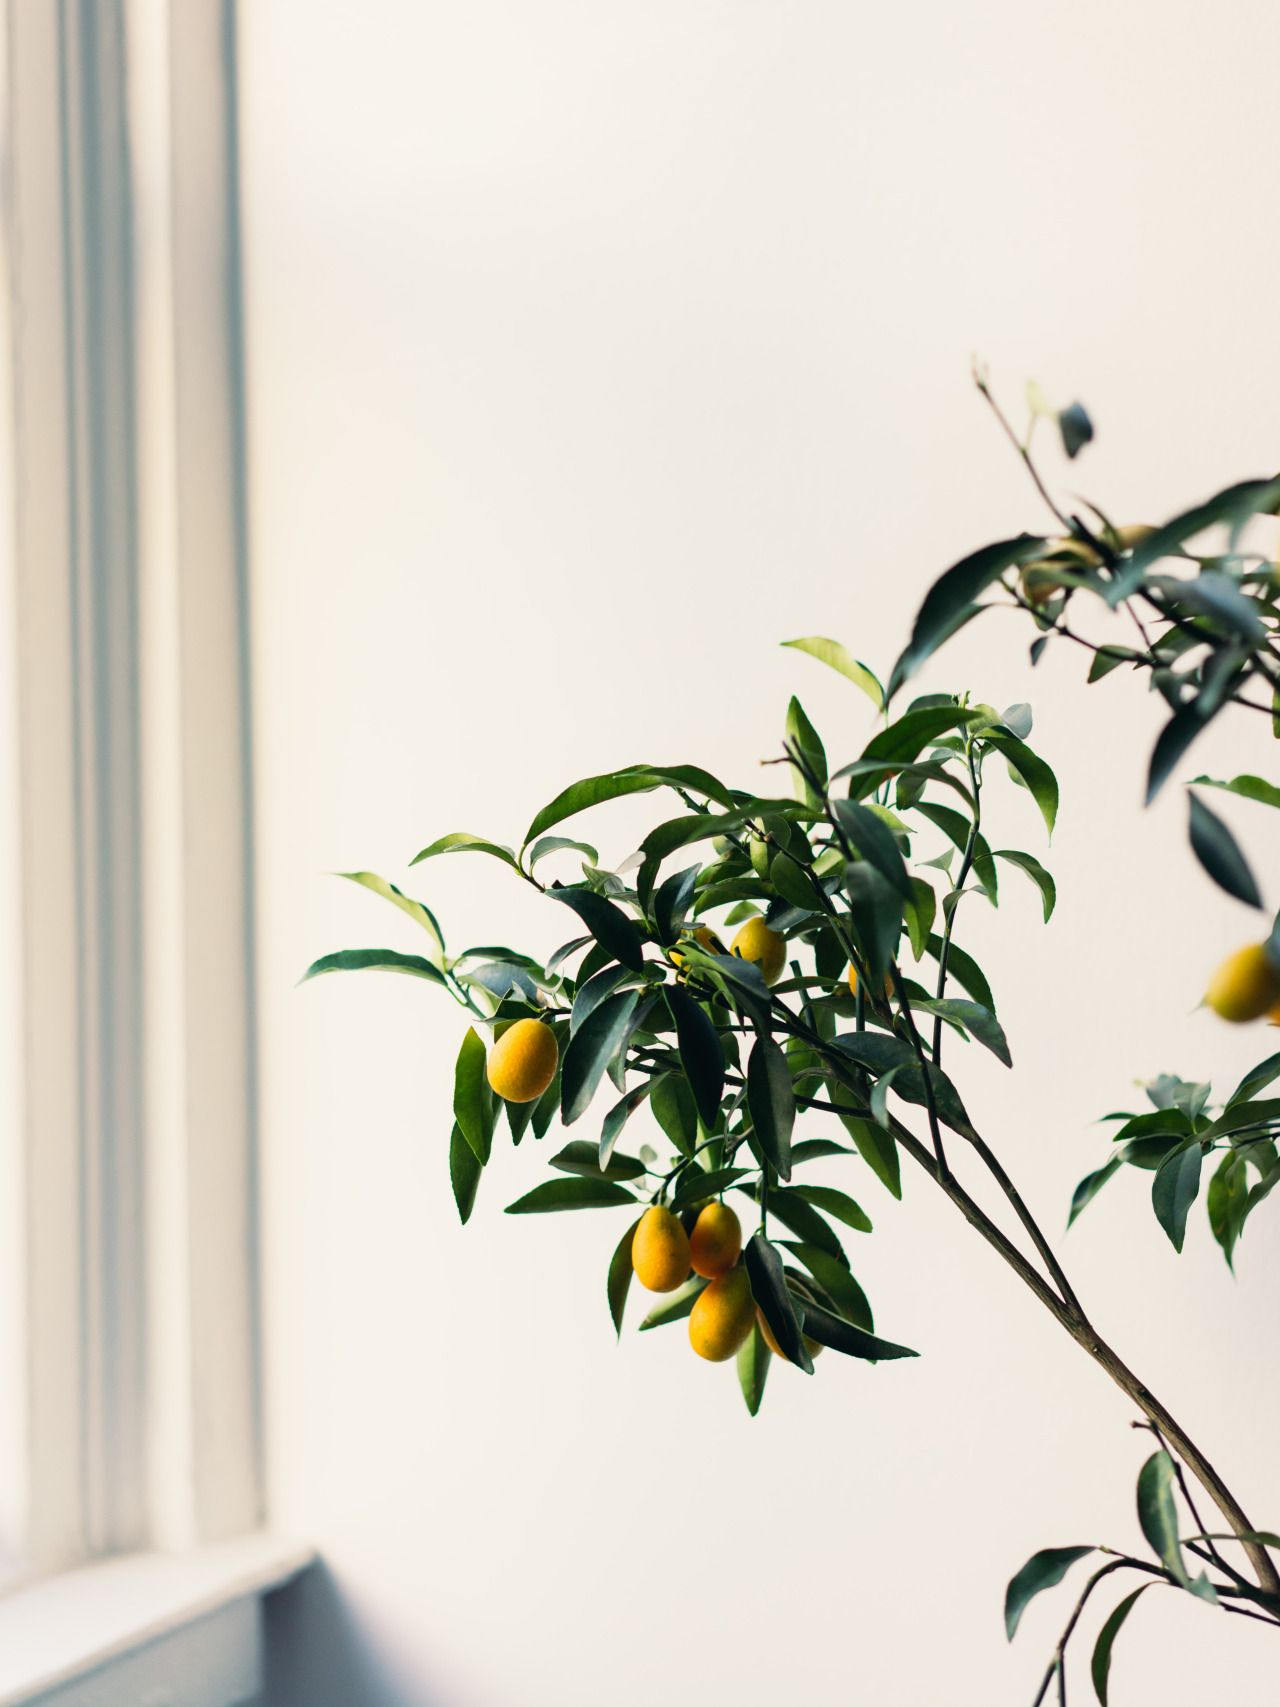 The Poetry Of Material Things Indoor Fruit Trees Plants 400 x 300